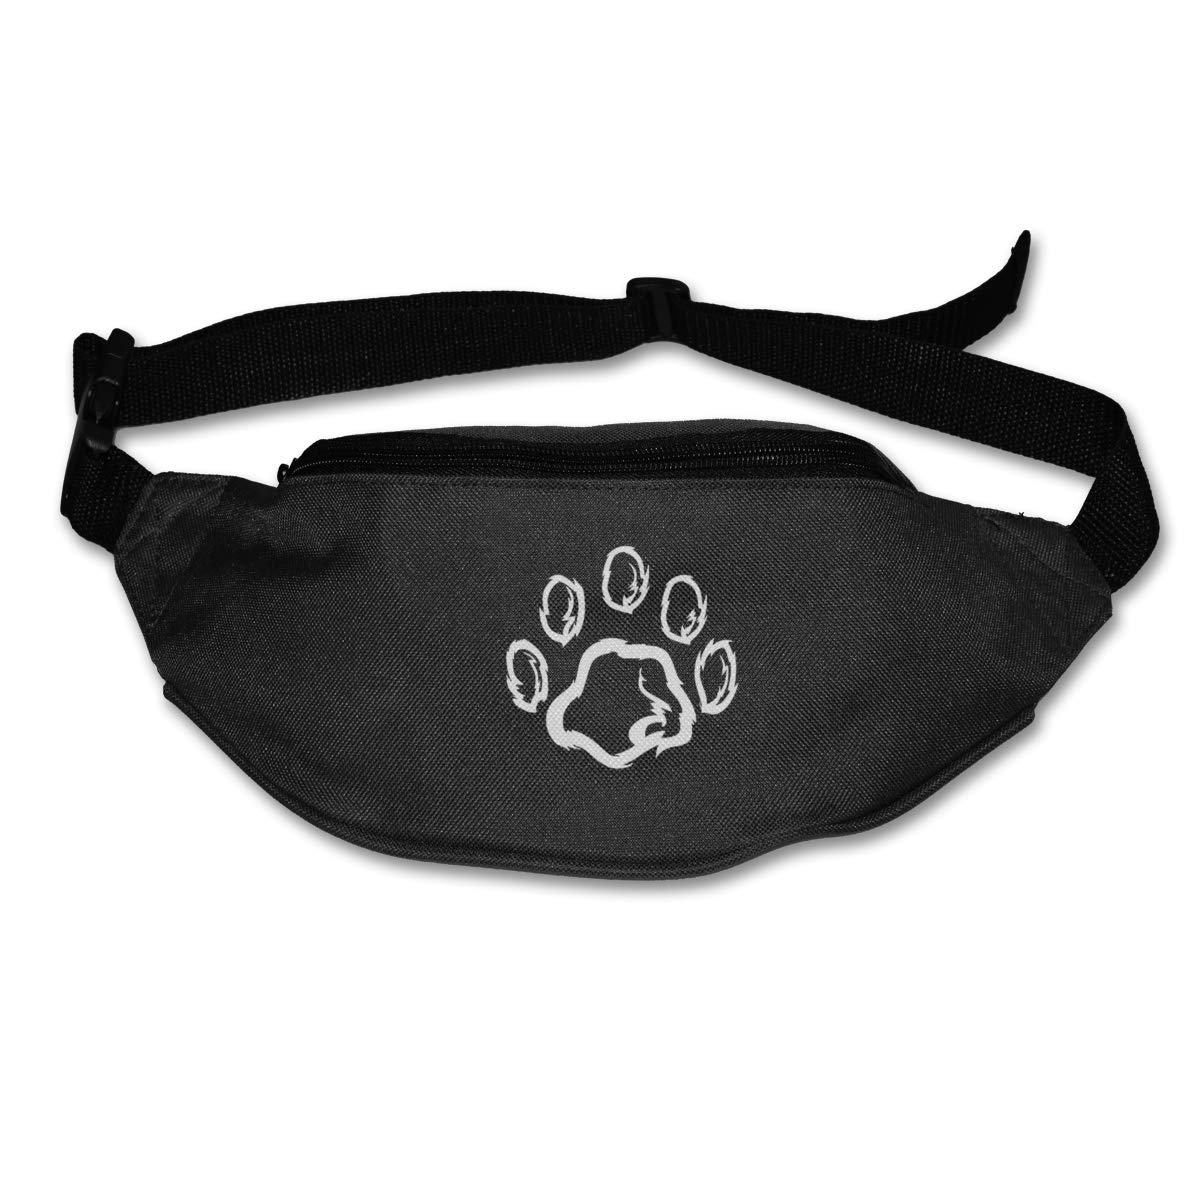 Paw Bear Sport Waist Bag Fanny Pack Adjustable For Run